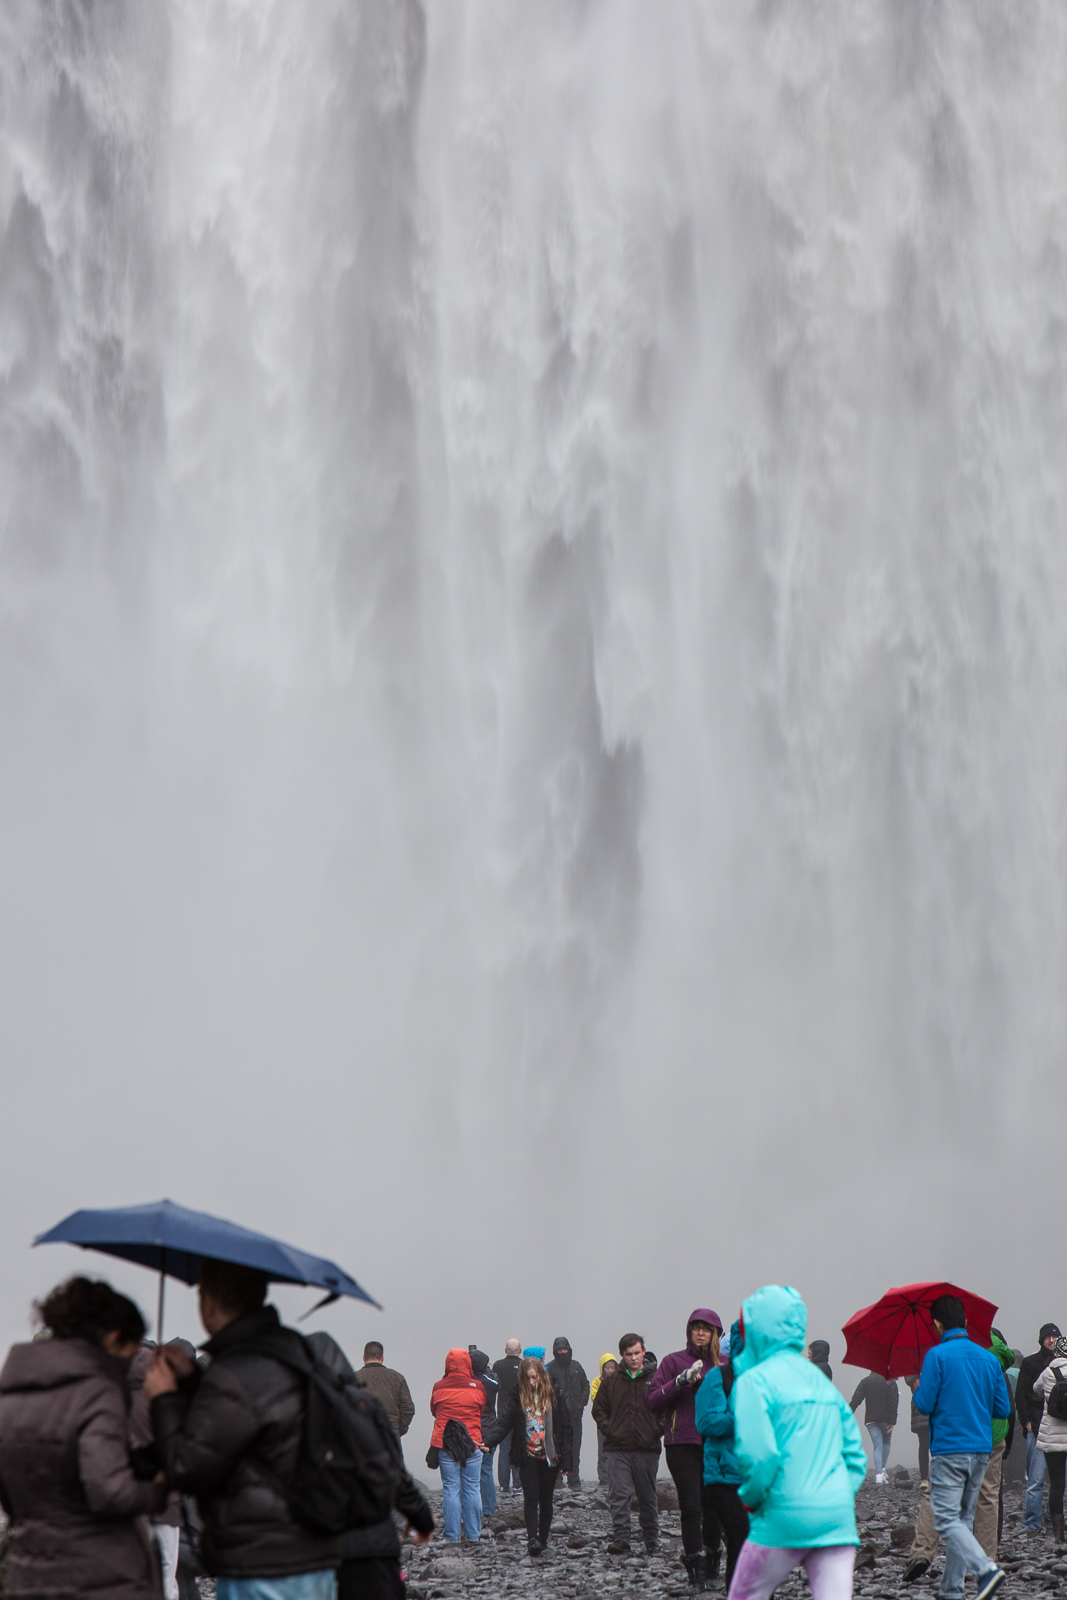 Skogafoss, a truly magnificent sight by any standards, is usually hidden by a mass of tourists. [Click to enlarge!]